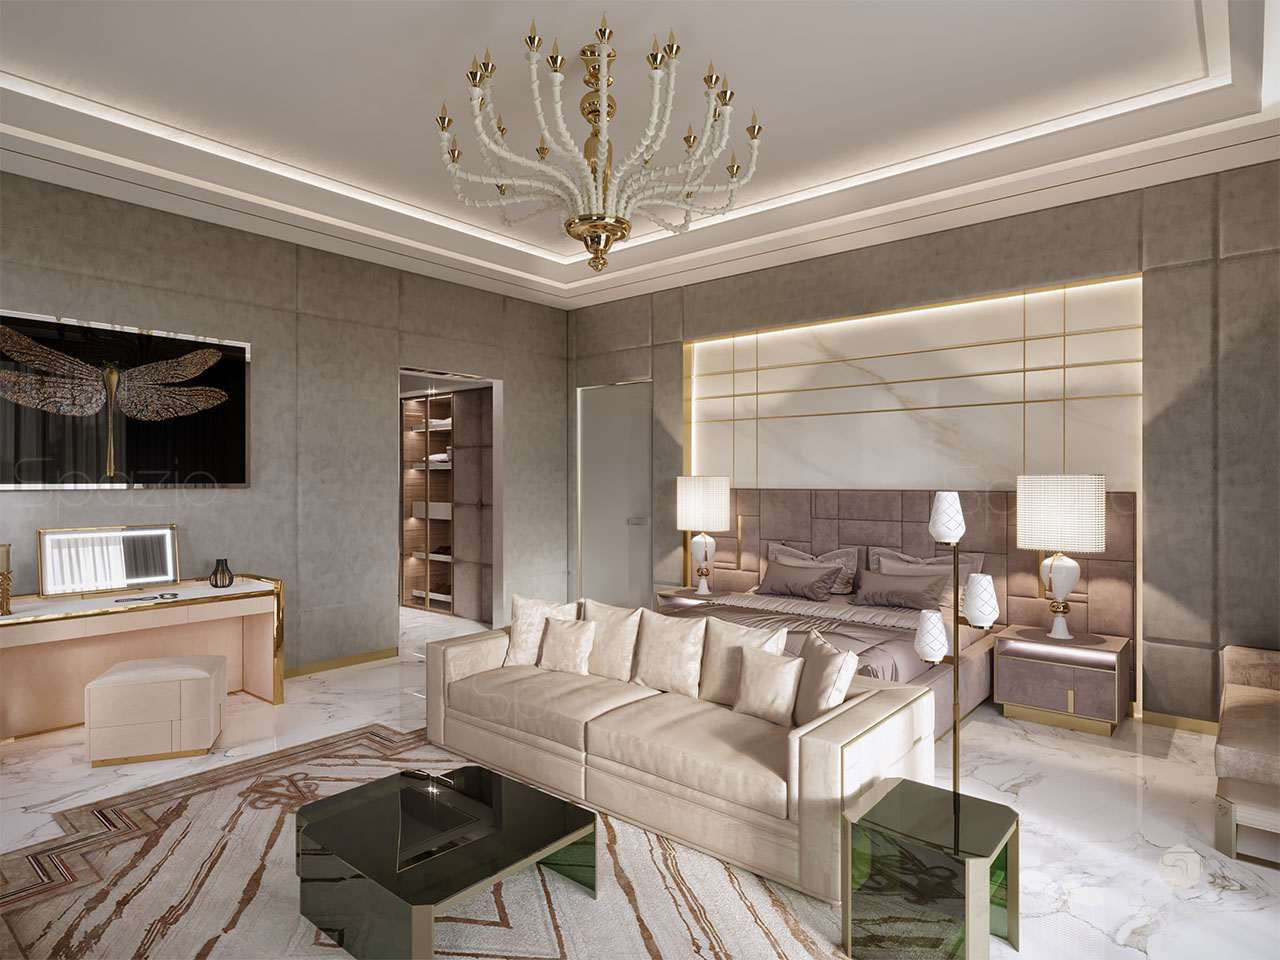 Design A Bedroom Luxury Master Bedroom Interior Design In Dubai 2019 Spazio